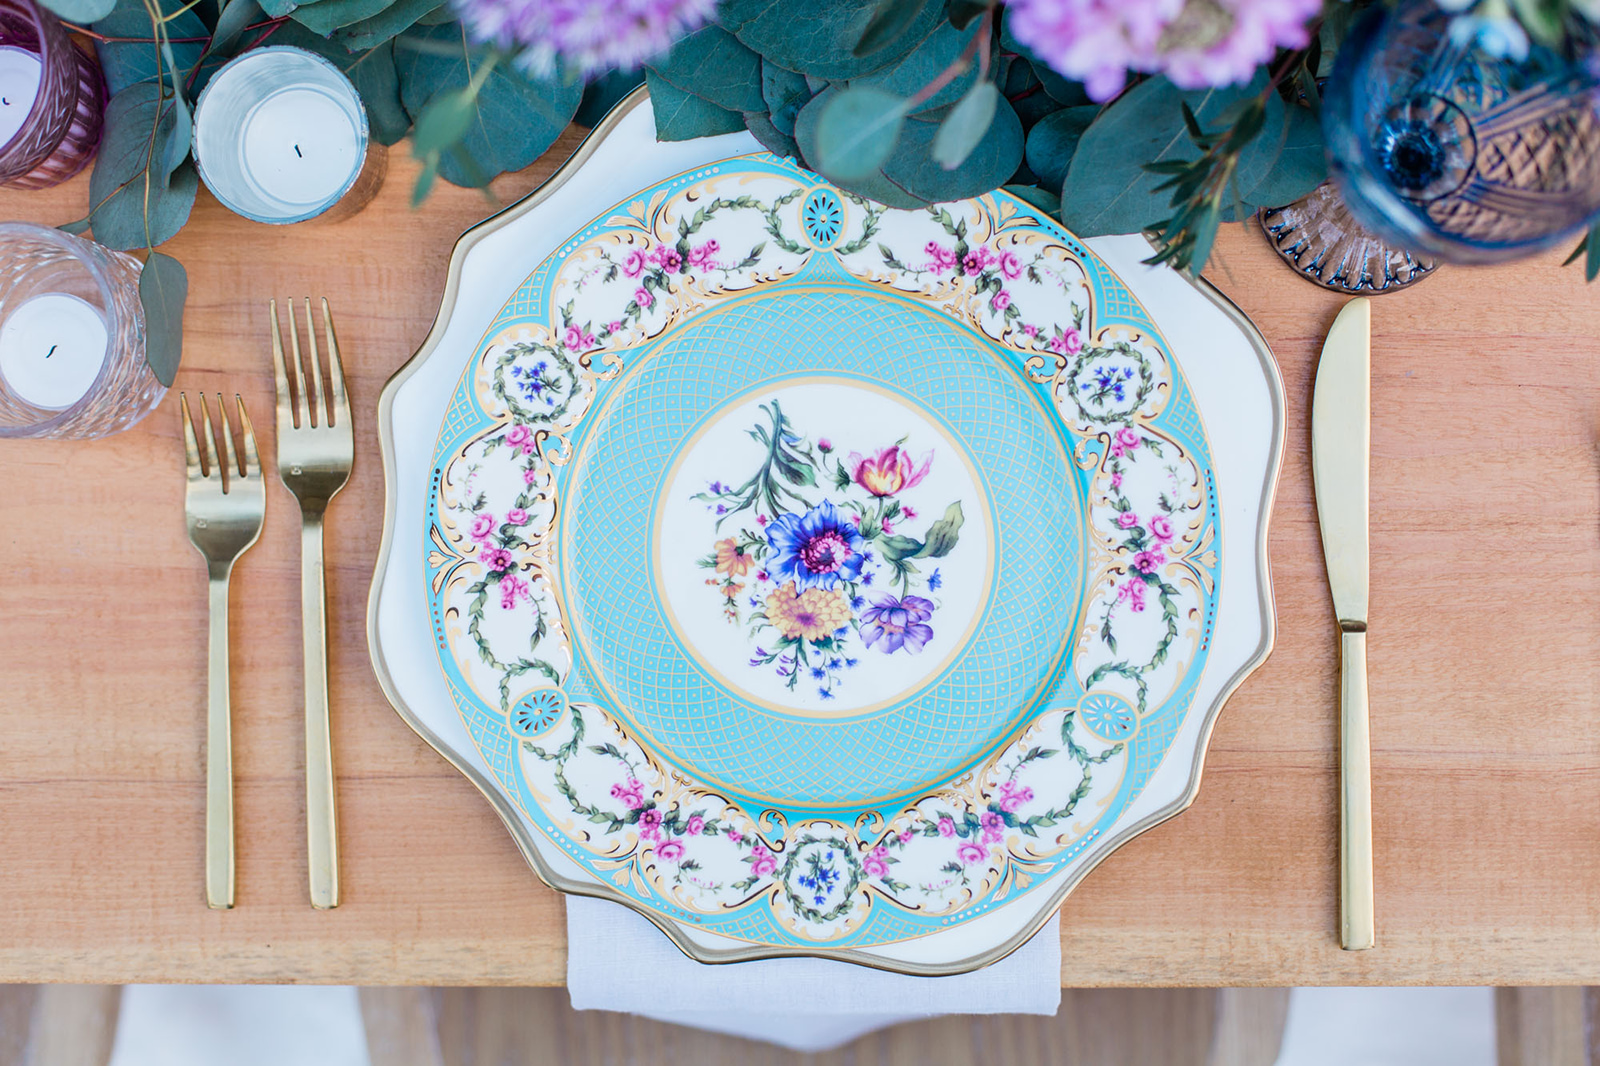 beautiful turquoise china plate and gold utensils for wedding